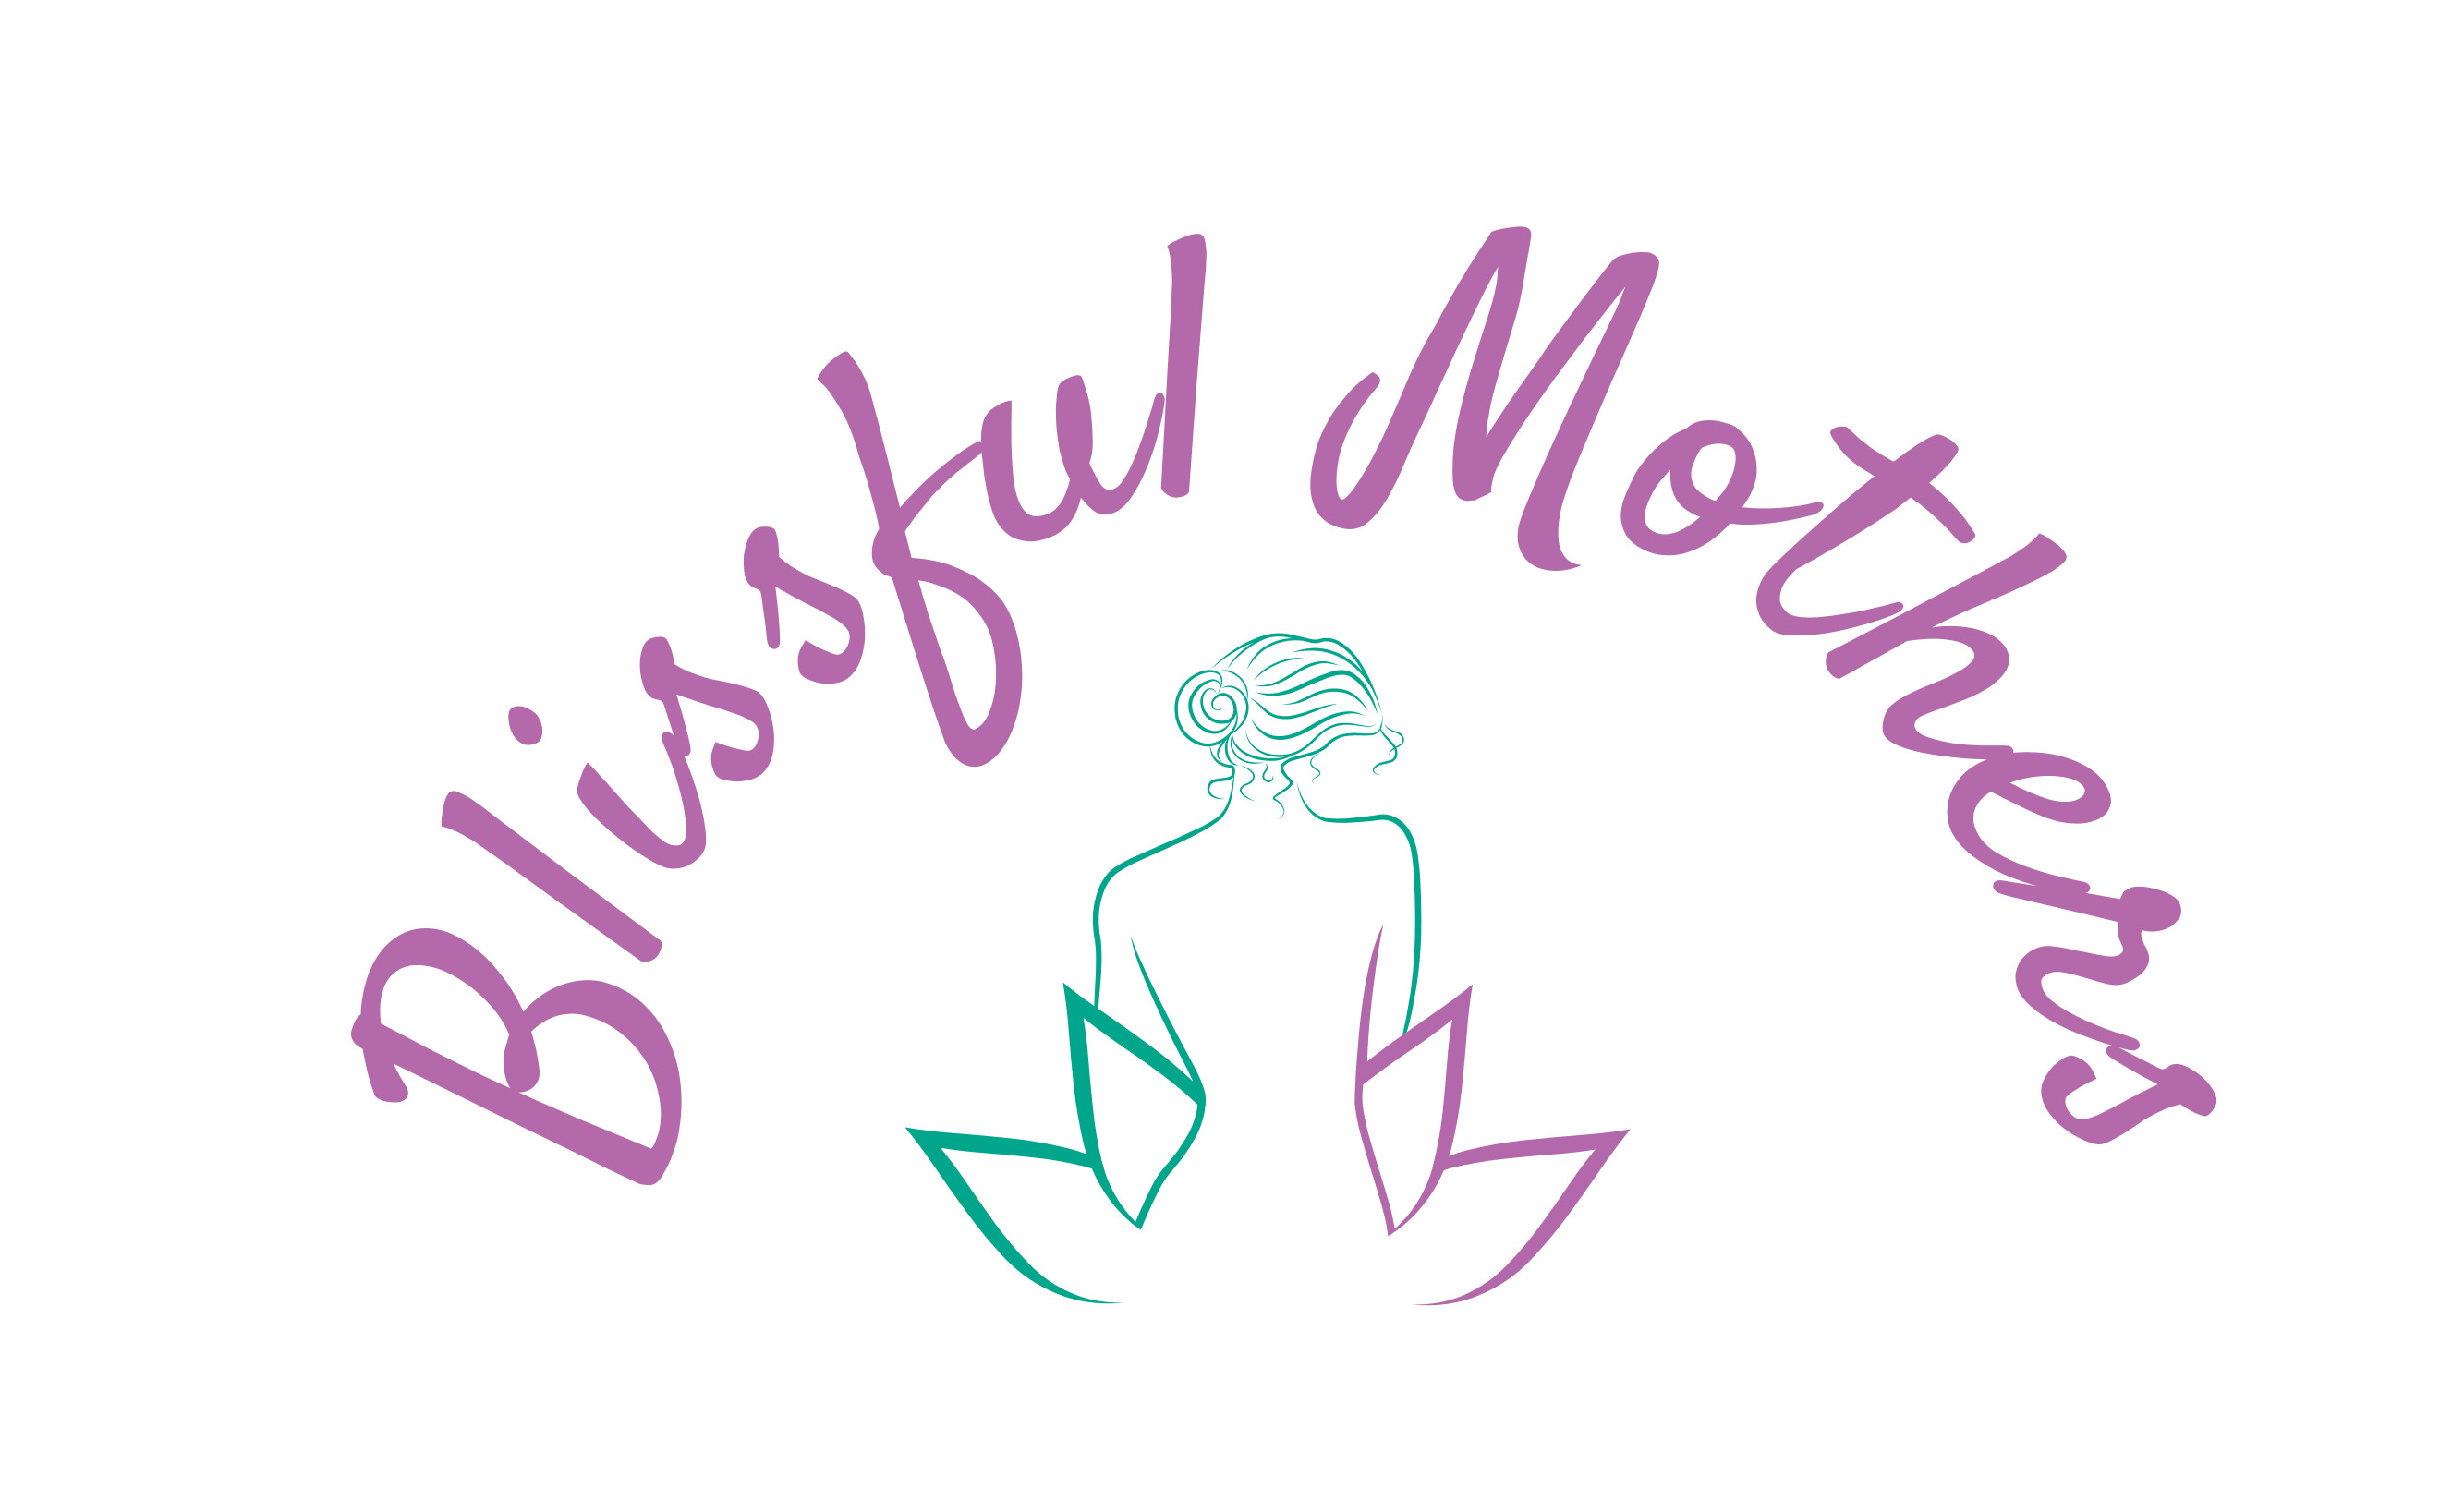 Blissful Mothers 's logo